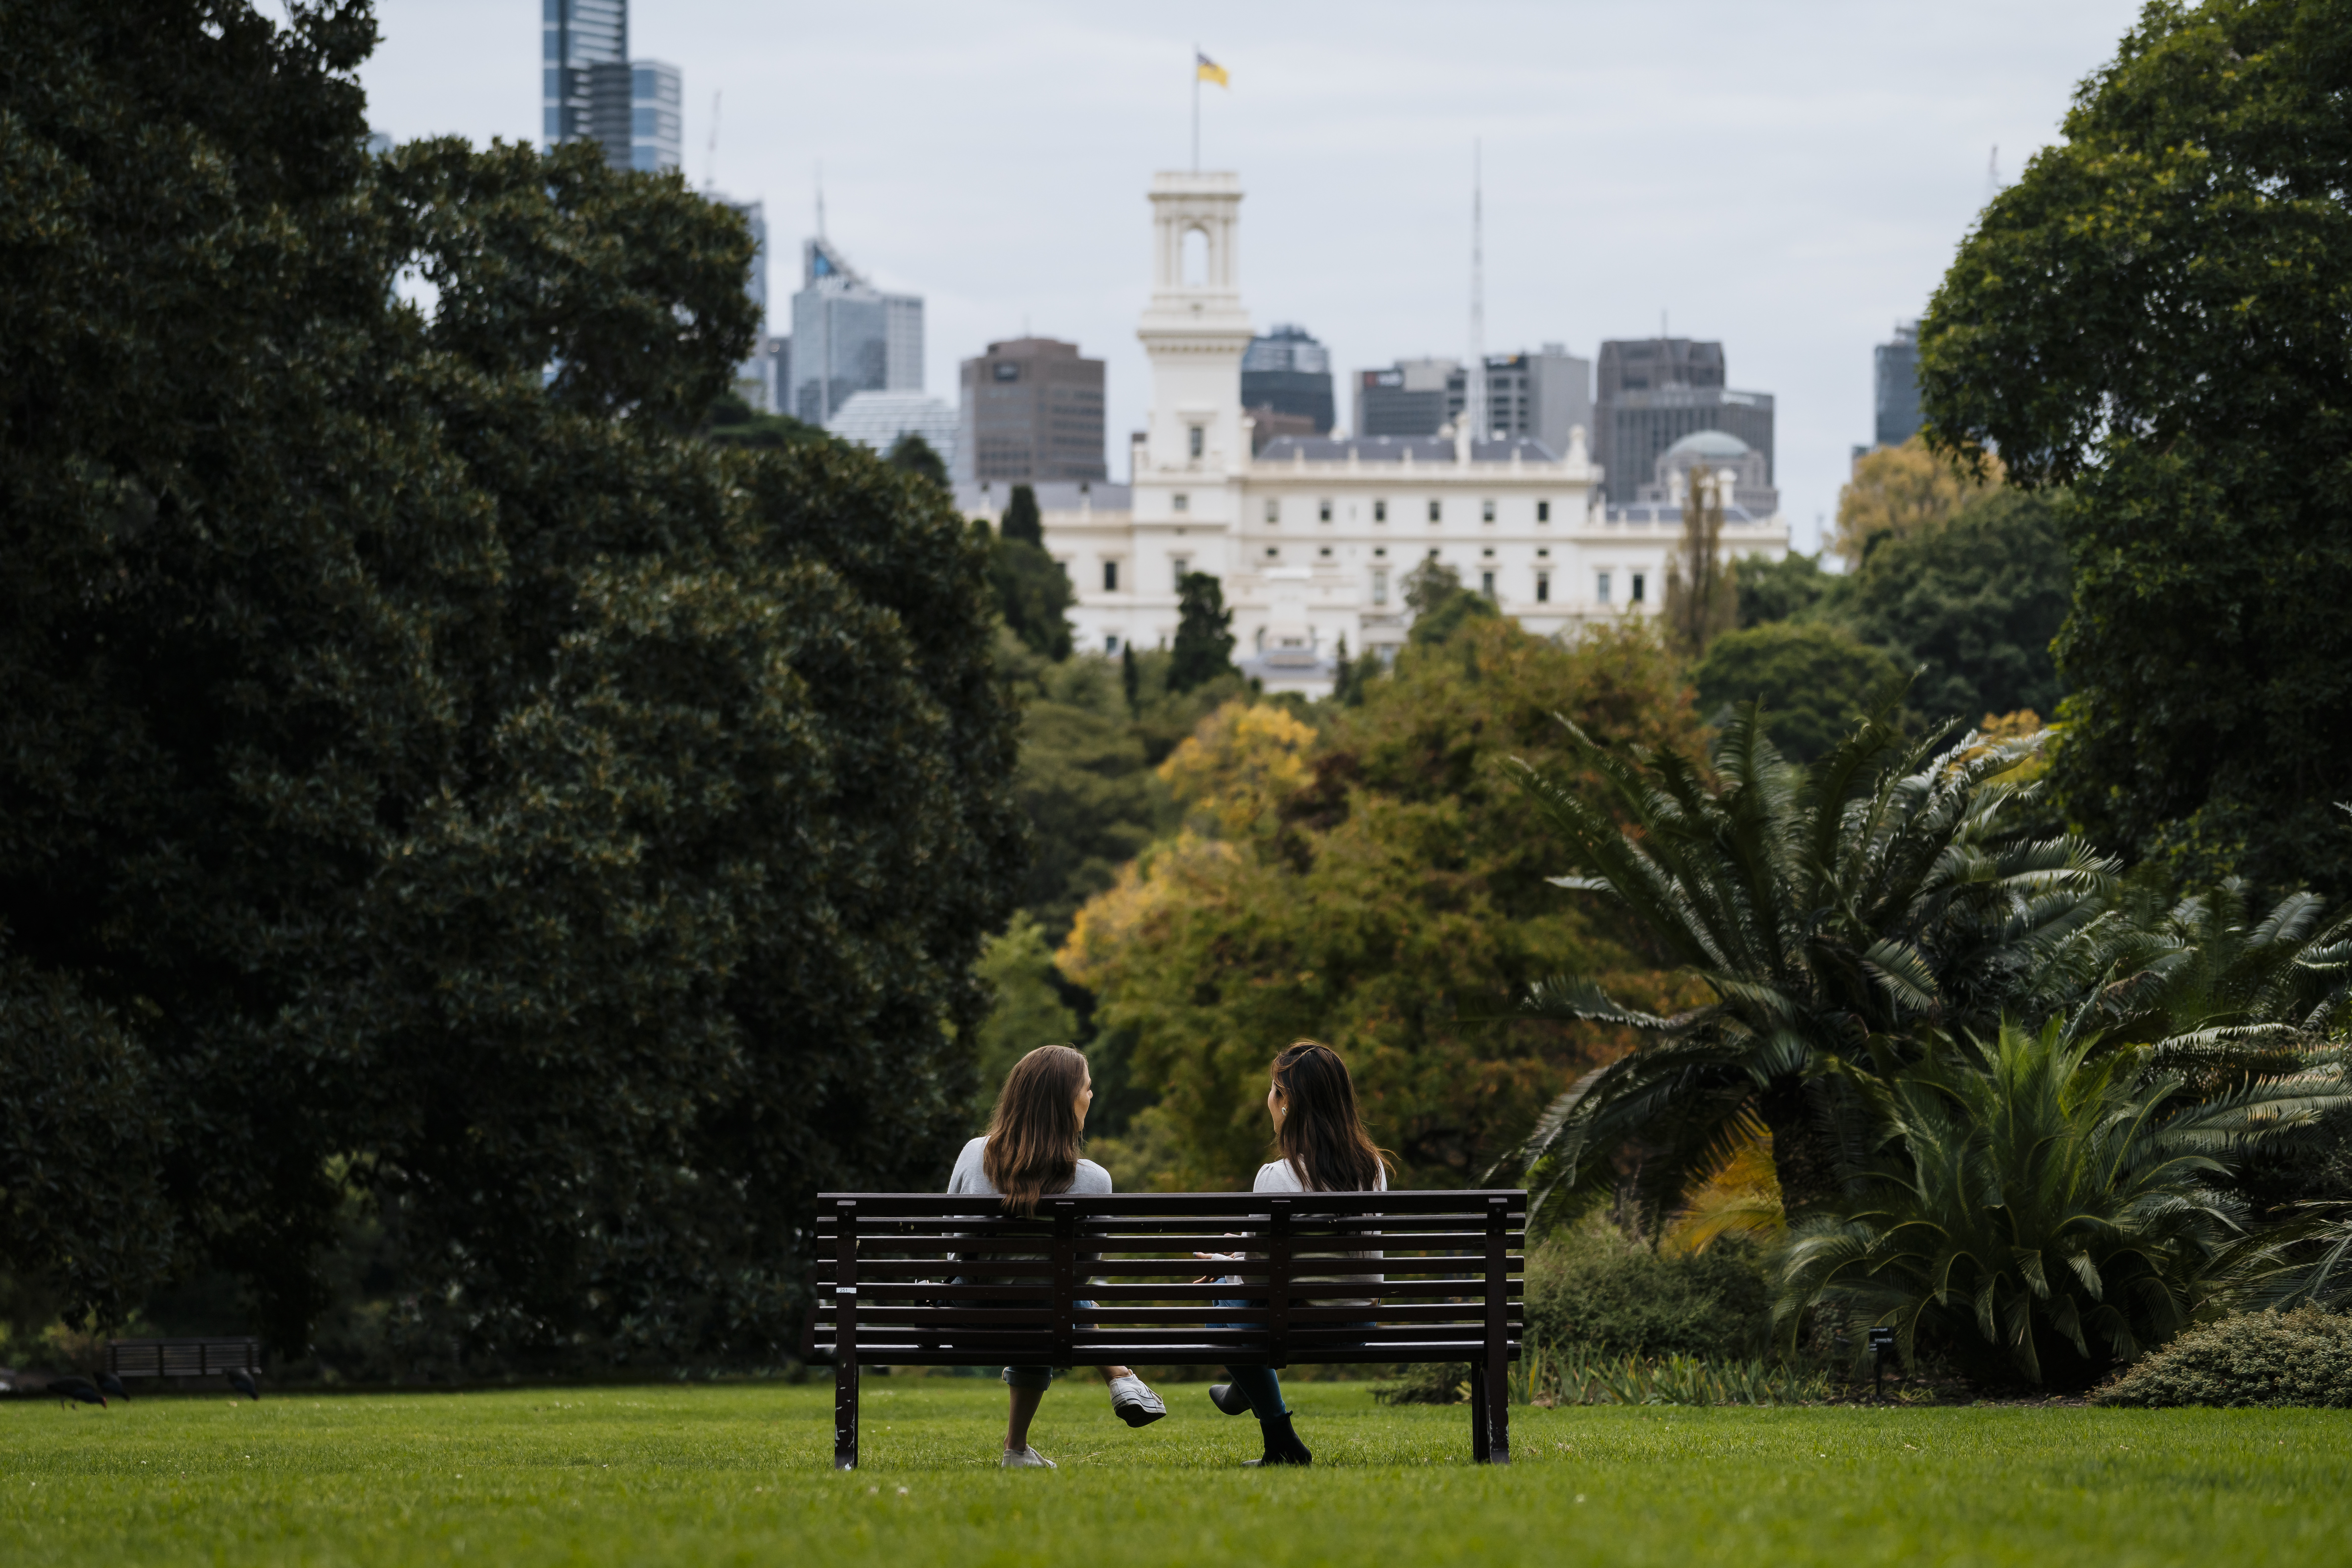 Two people sitting on a bench in Melbourne Royal Botanical Gardens with the CBD visible in the background.